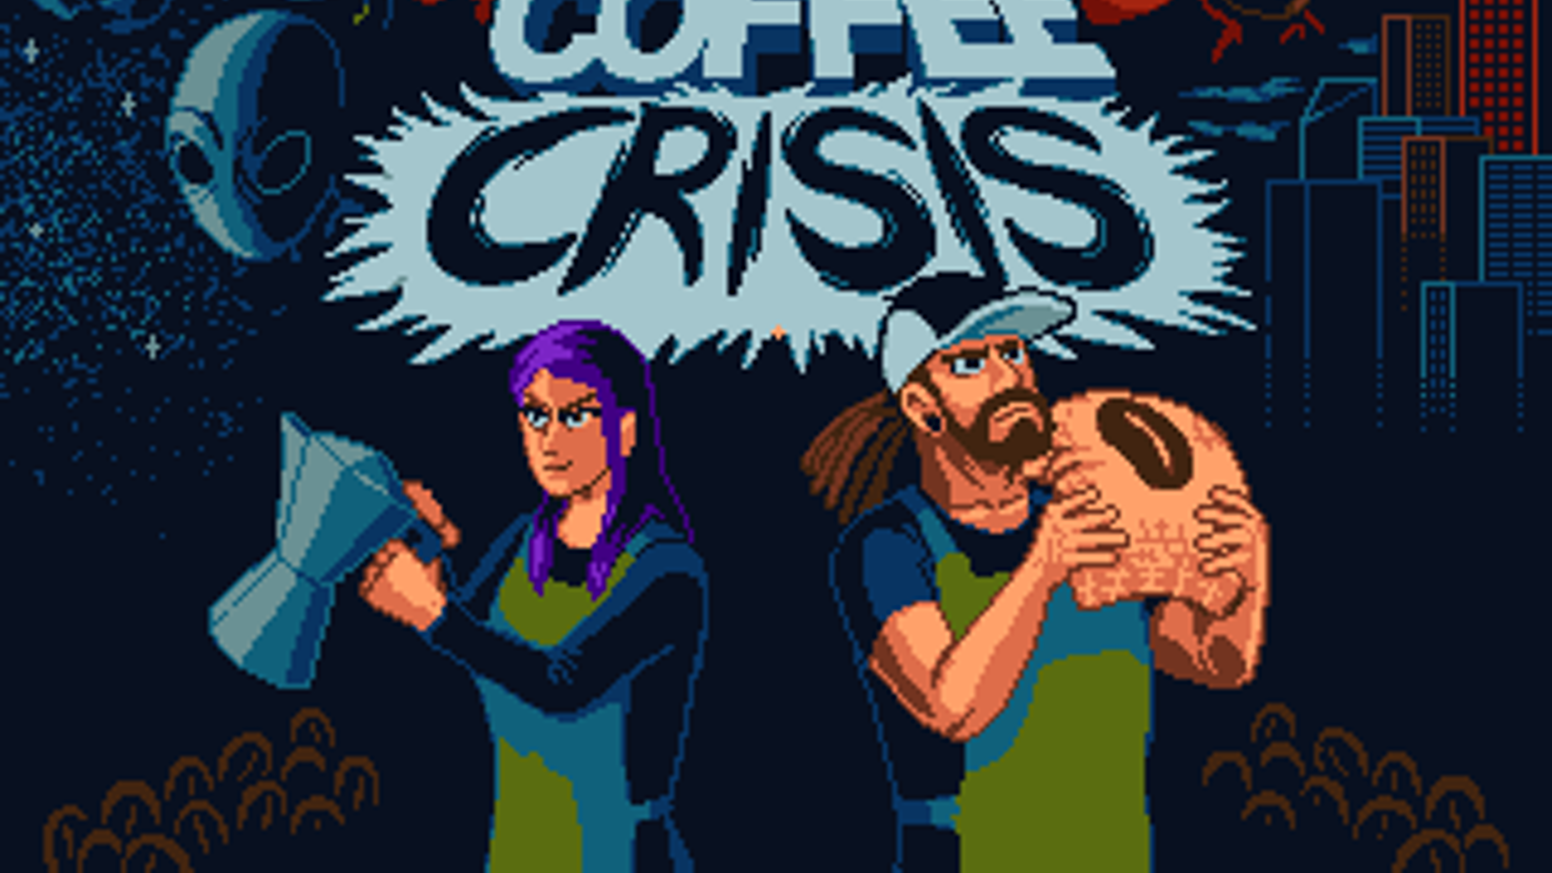 Coffee Crisis is a metal Sega Genesis game in 16-bit, Hi-Definition glory.  Stop the Smurglians & save the Earth!